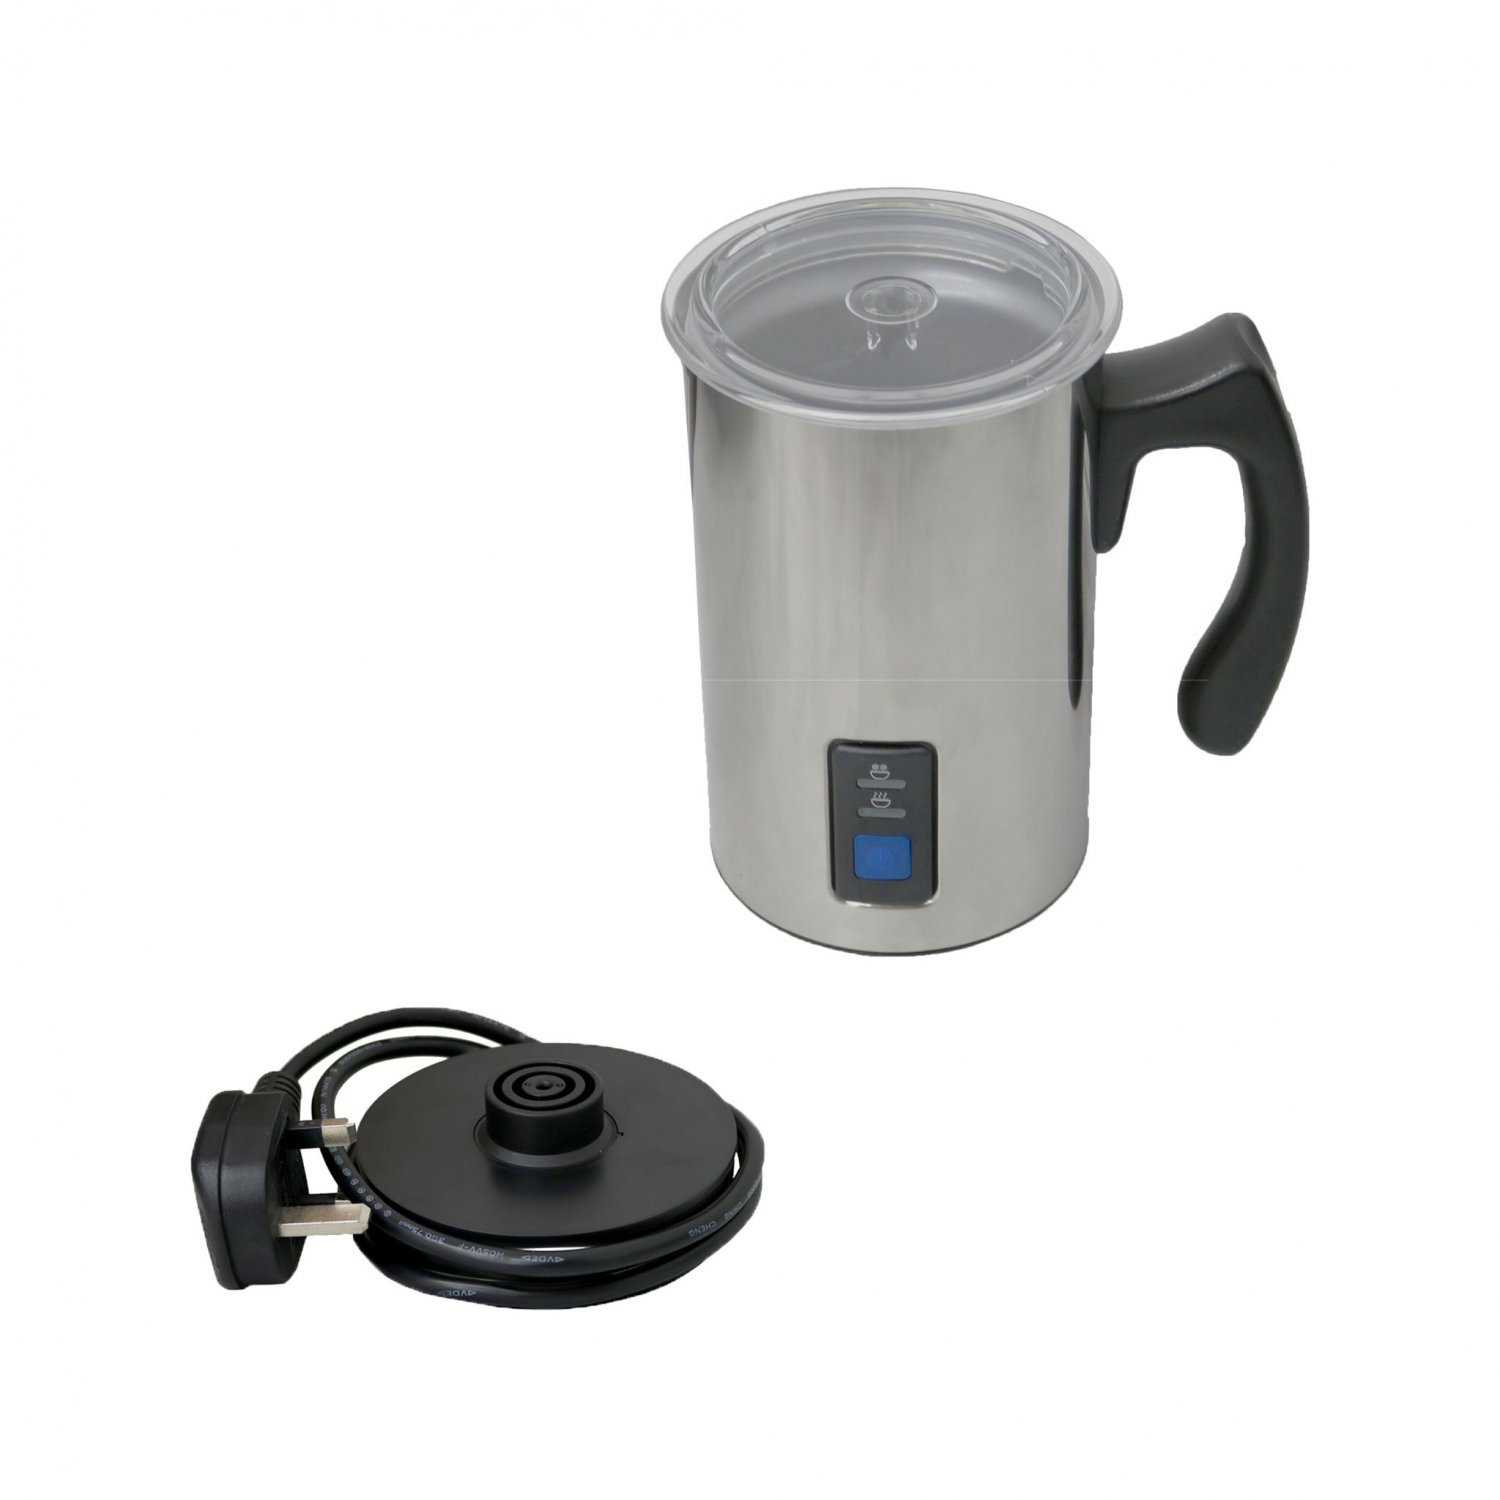 Stainless Steel Electric Milk Frother And Warmer Coffee